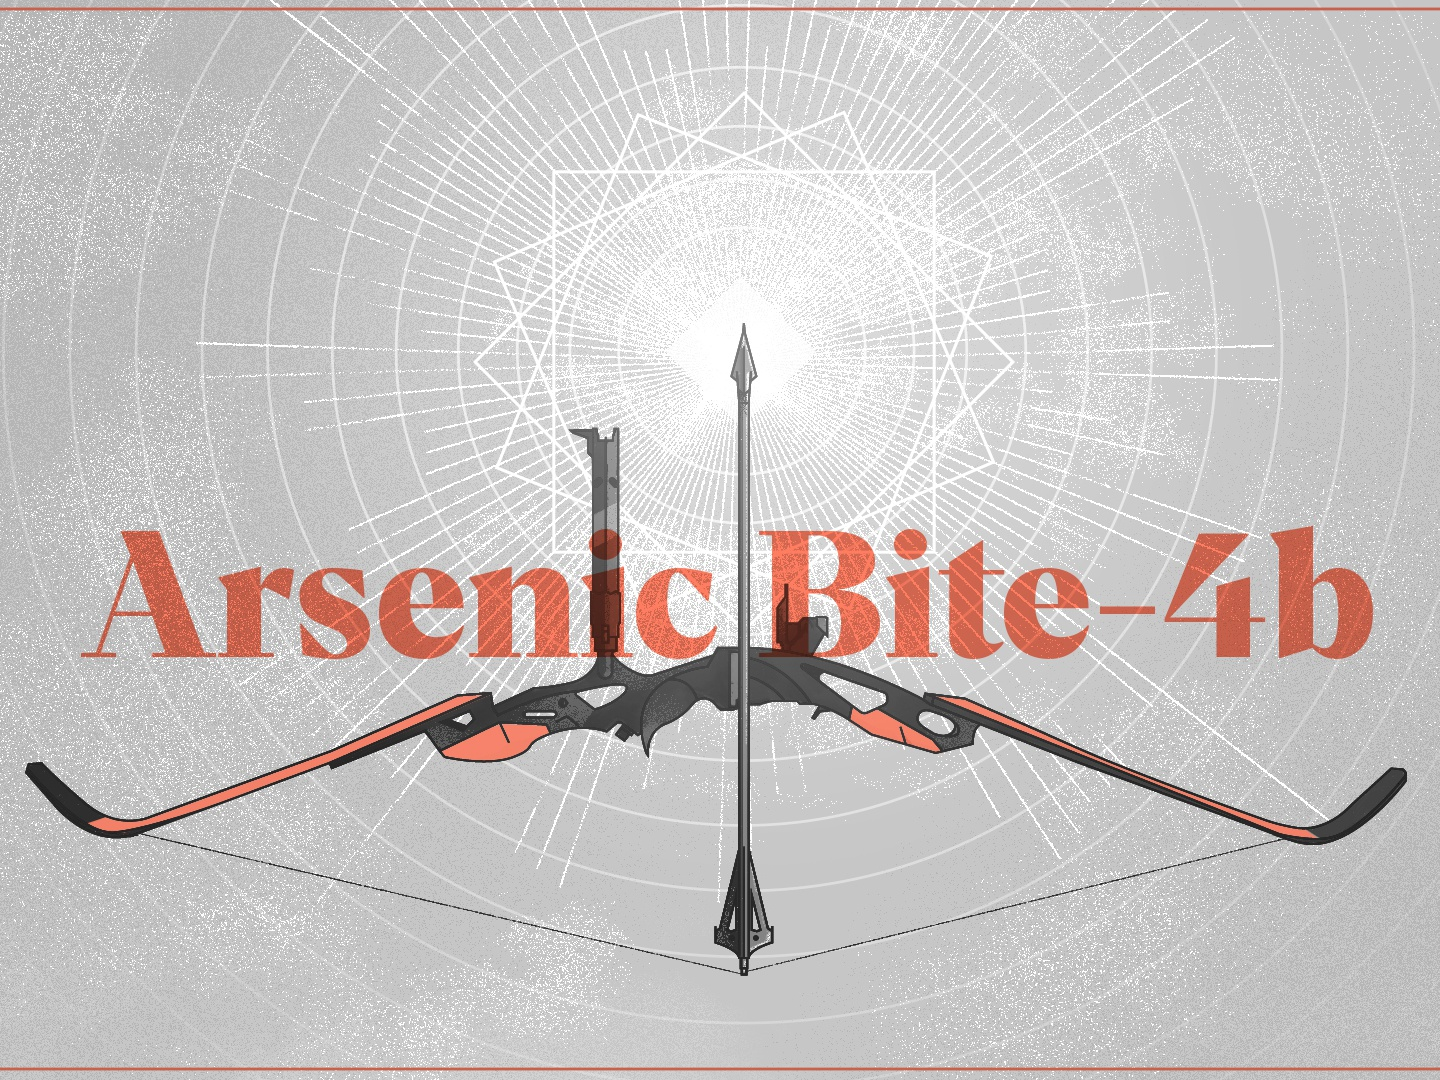 Arsenic Bite-4b fan-art video game bungie playstation xbox gaming arrow bow destiny